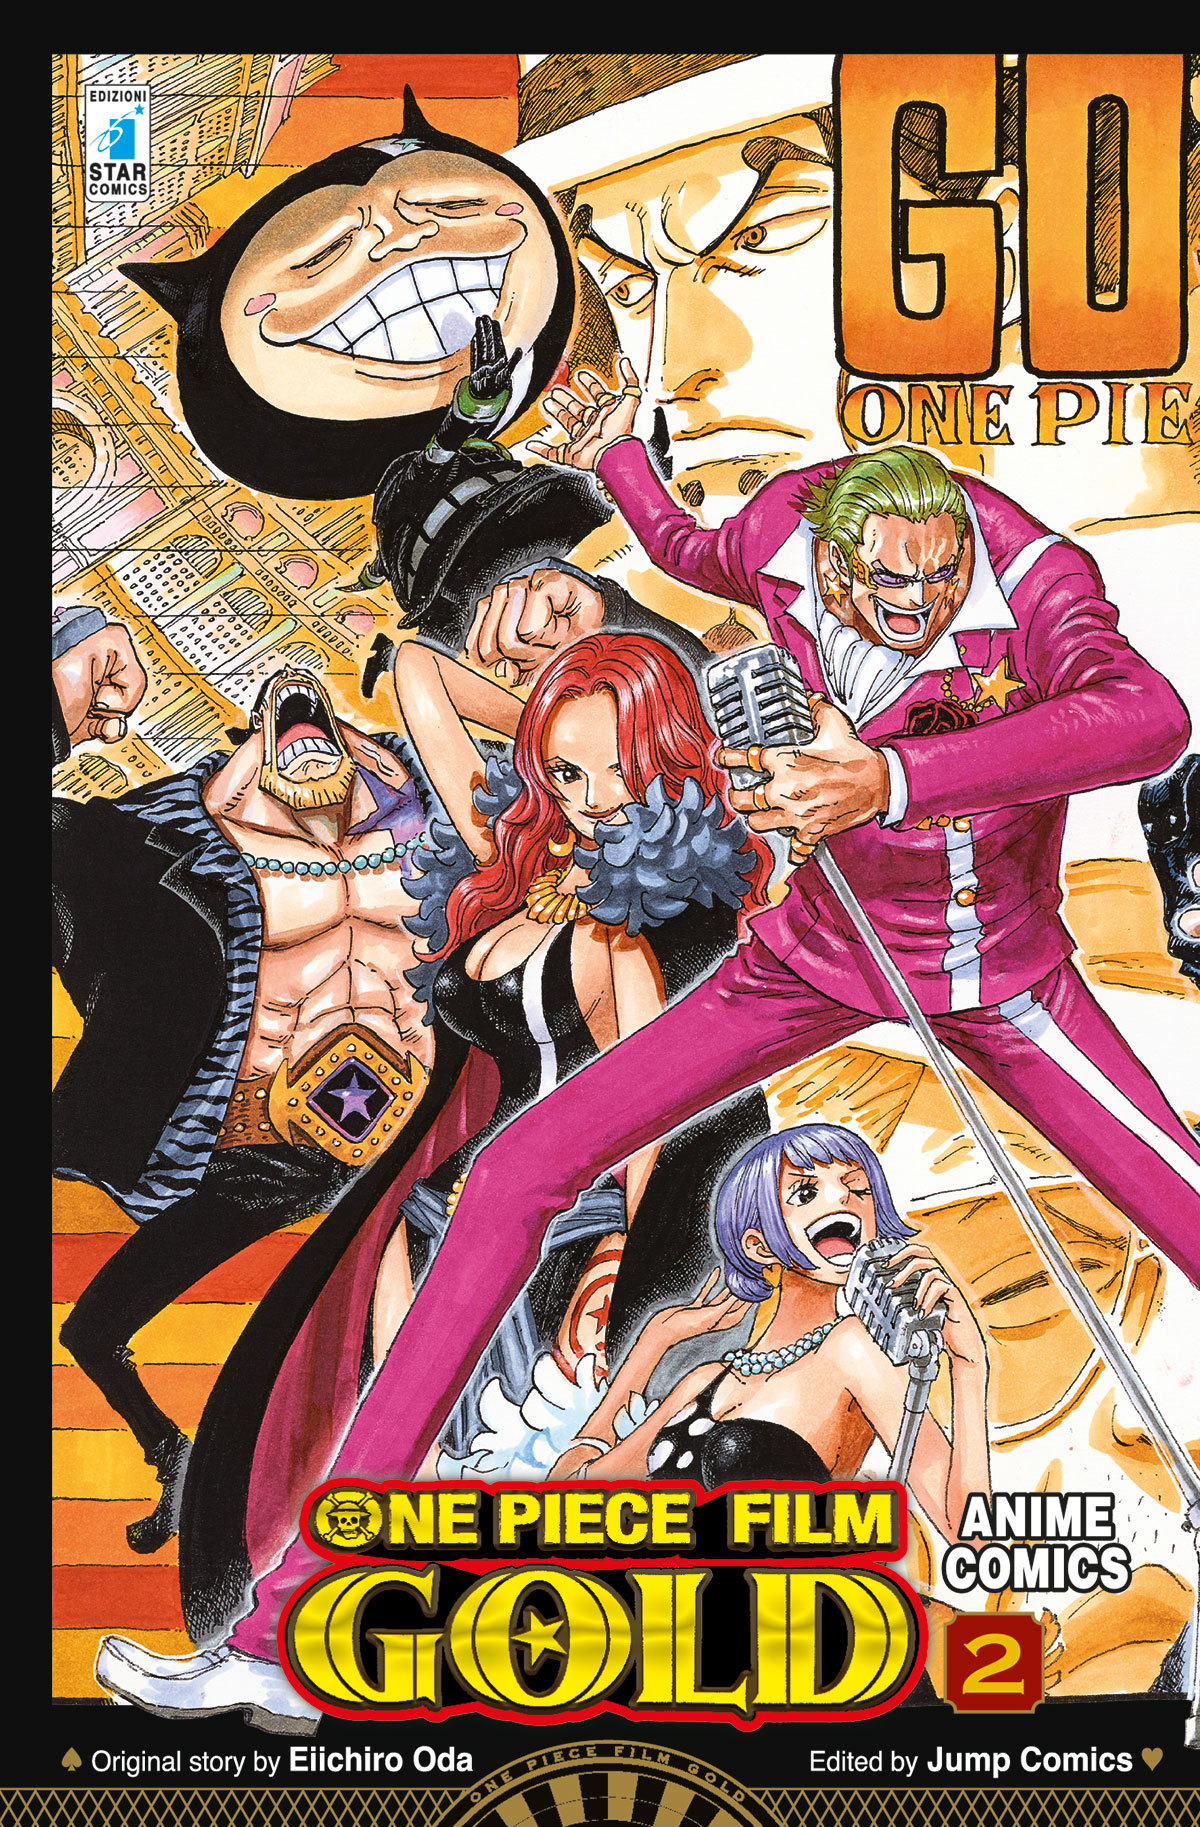 ONE PIECE GOLD: IL FILM – ANIME COMICS n. 2